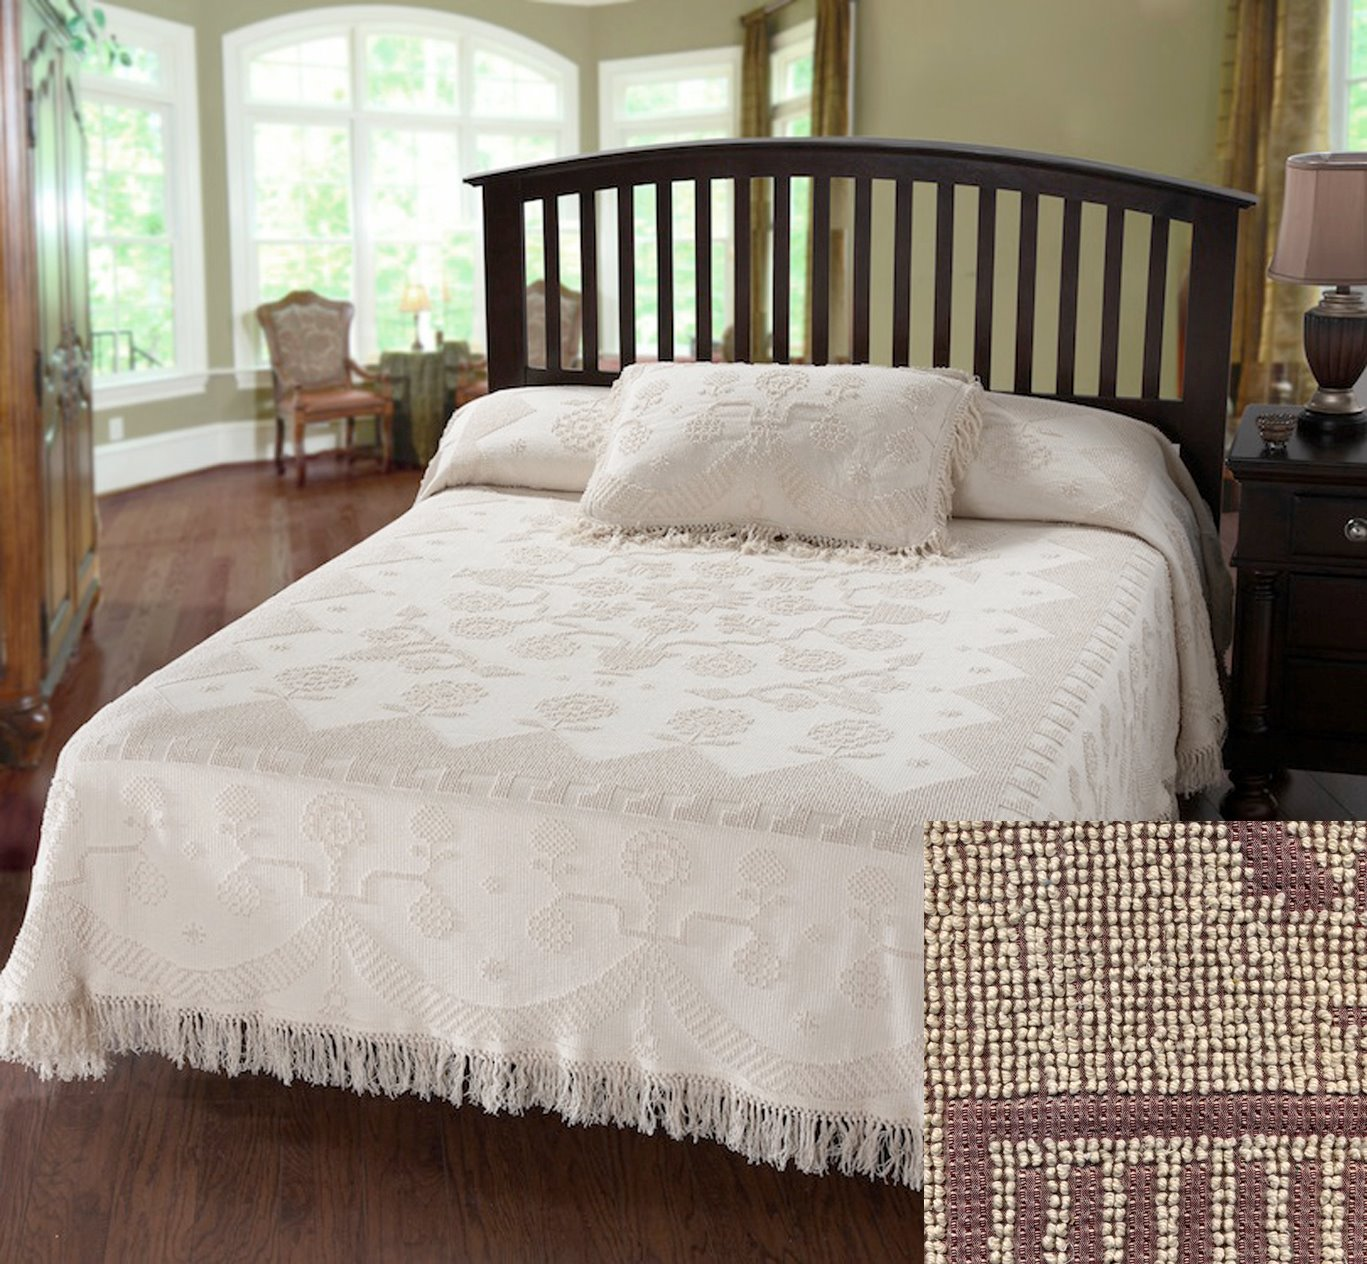 George Washington Bedspread King Maroon